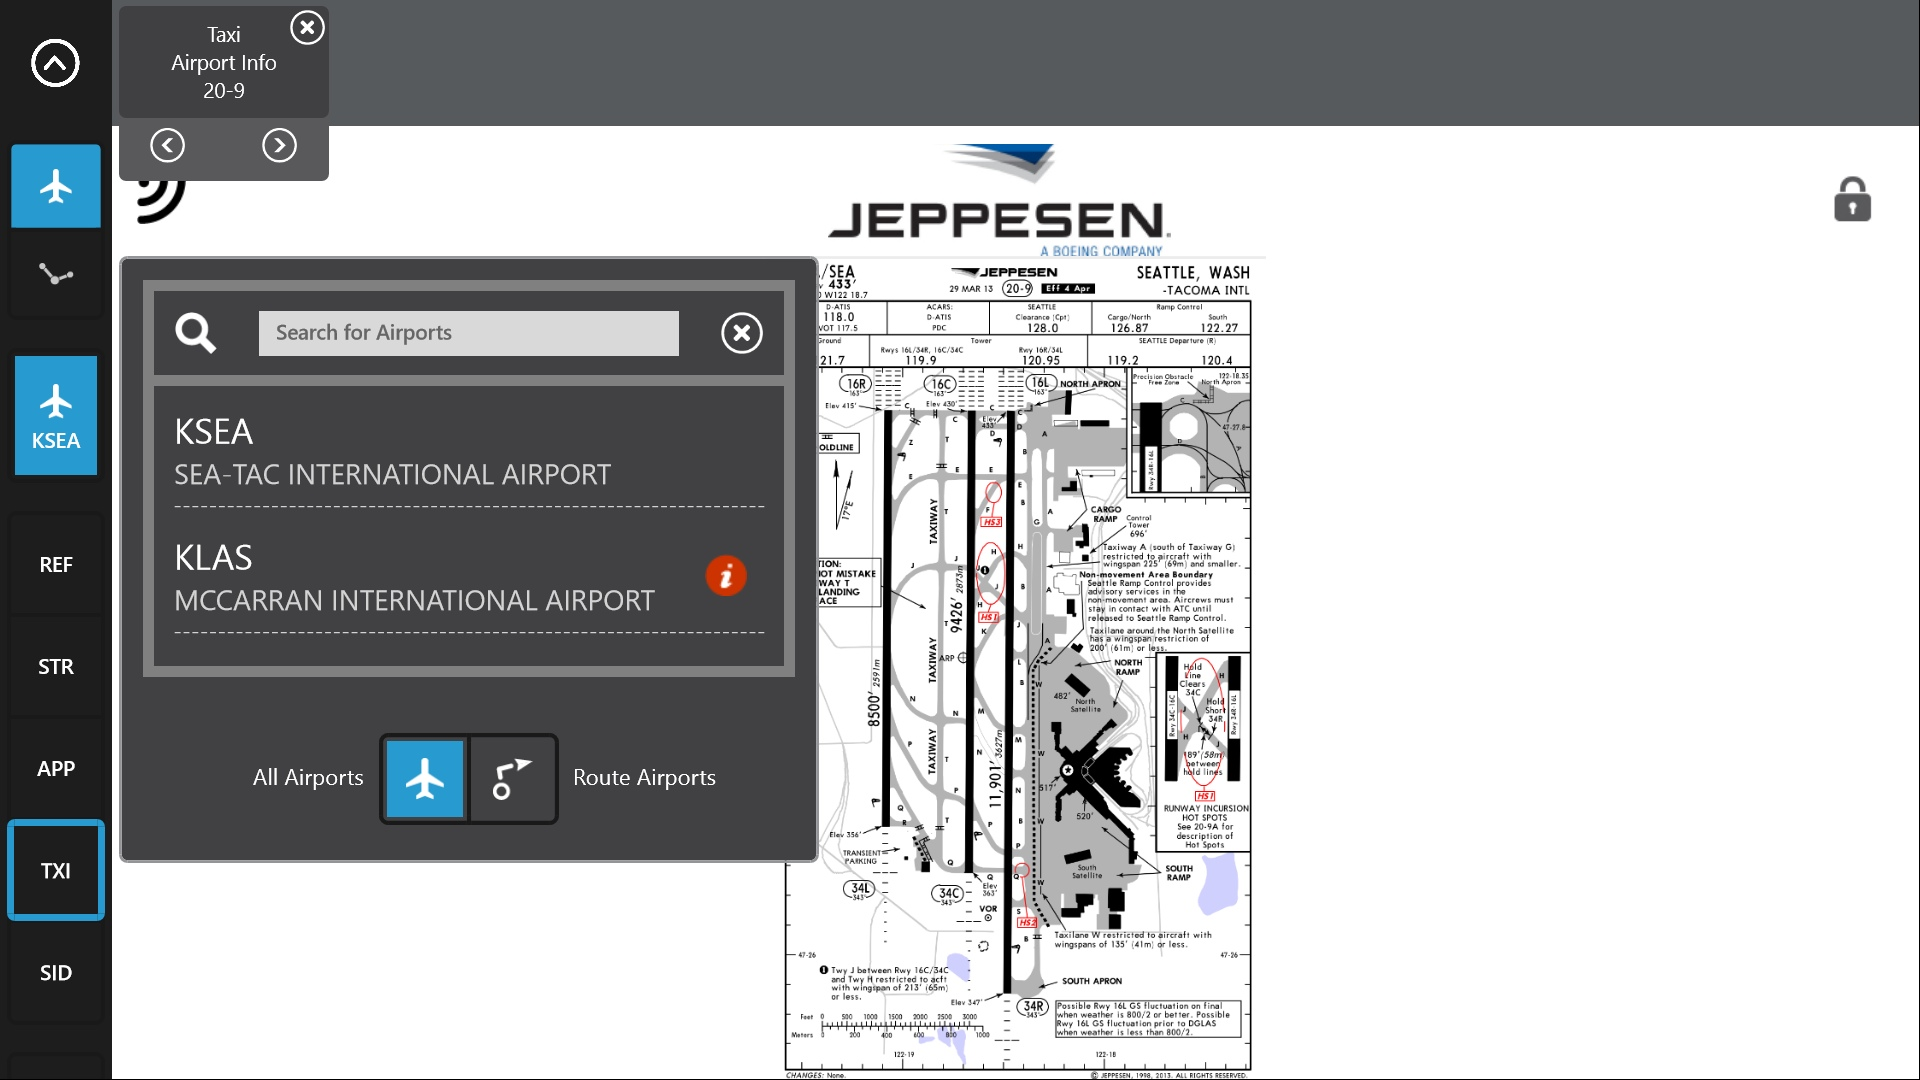 Jeppesen Flite Deck Pro Windows 8 search